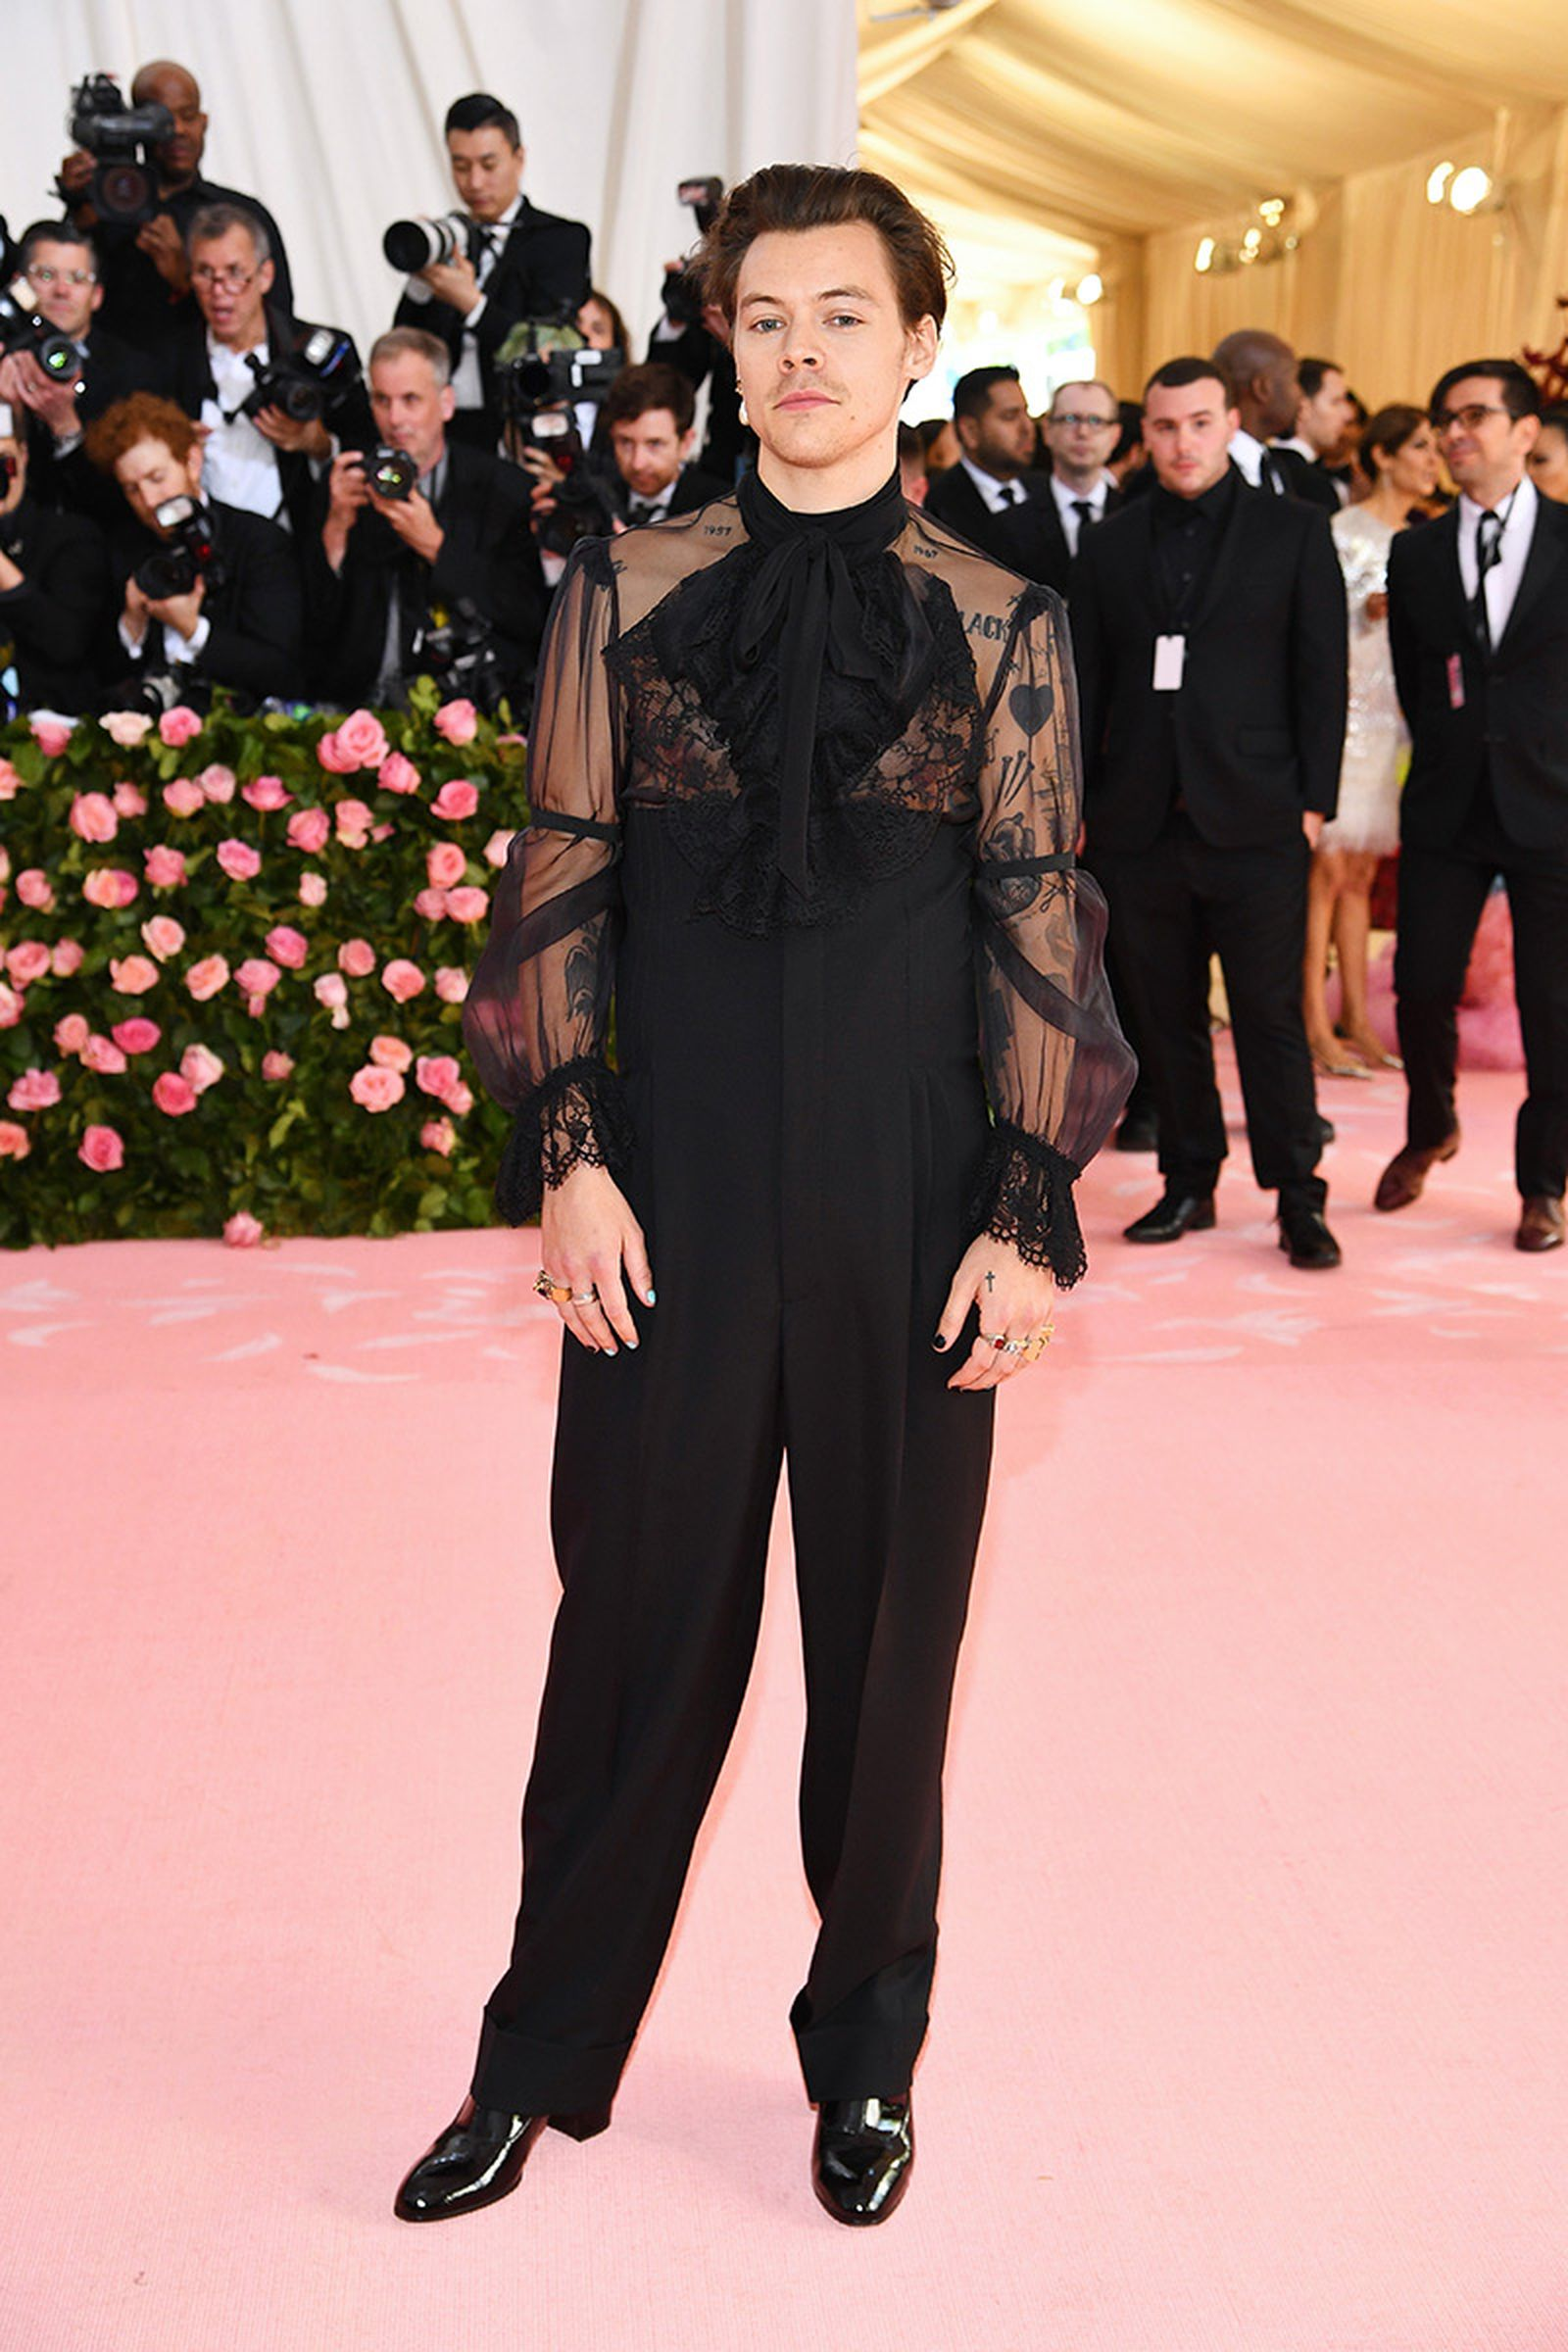 graeme main harry styles Met Gala 2019